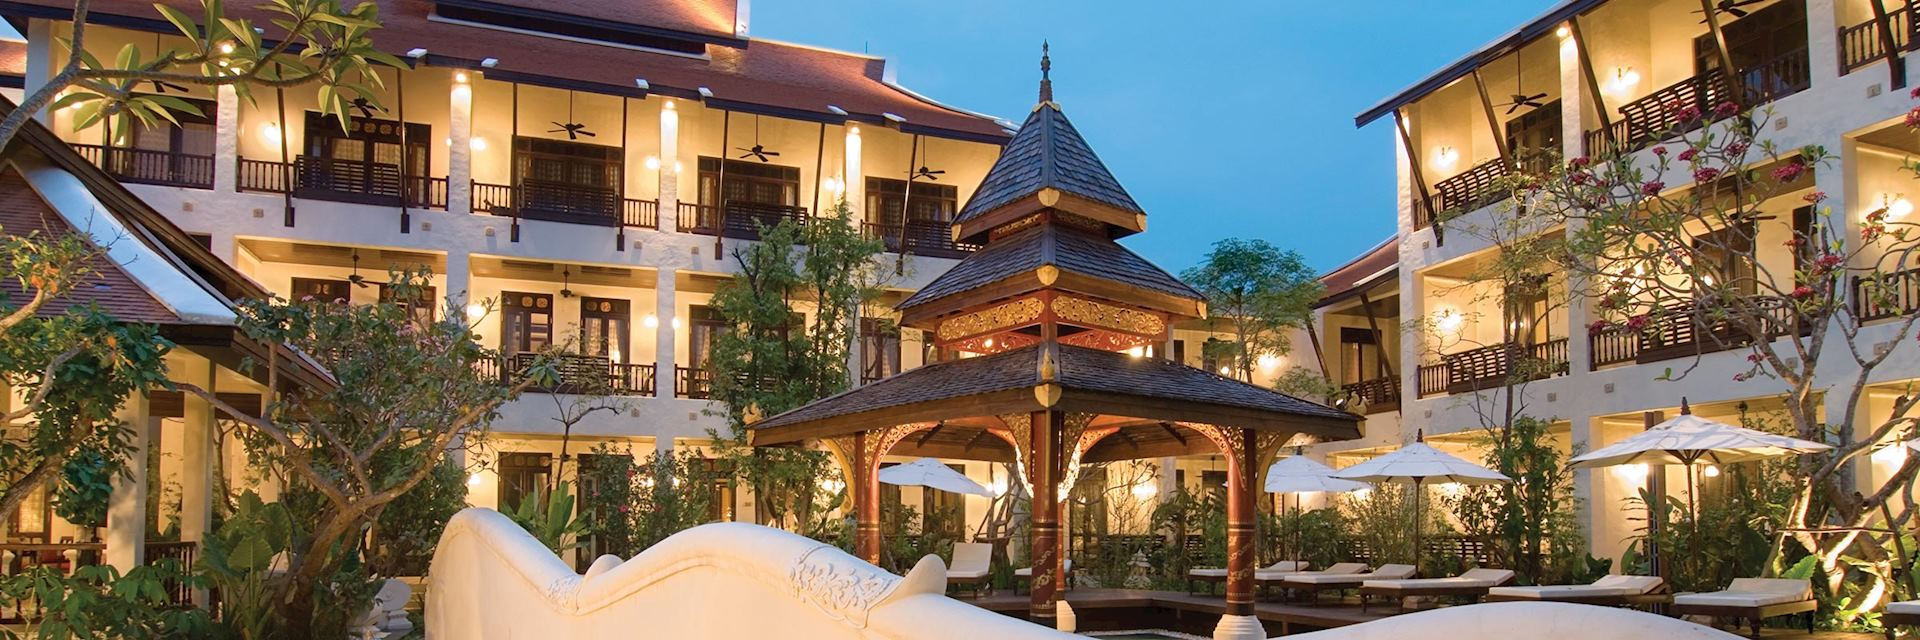 Puripunn Boutique hotel, Chiang Mai